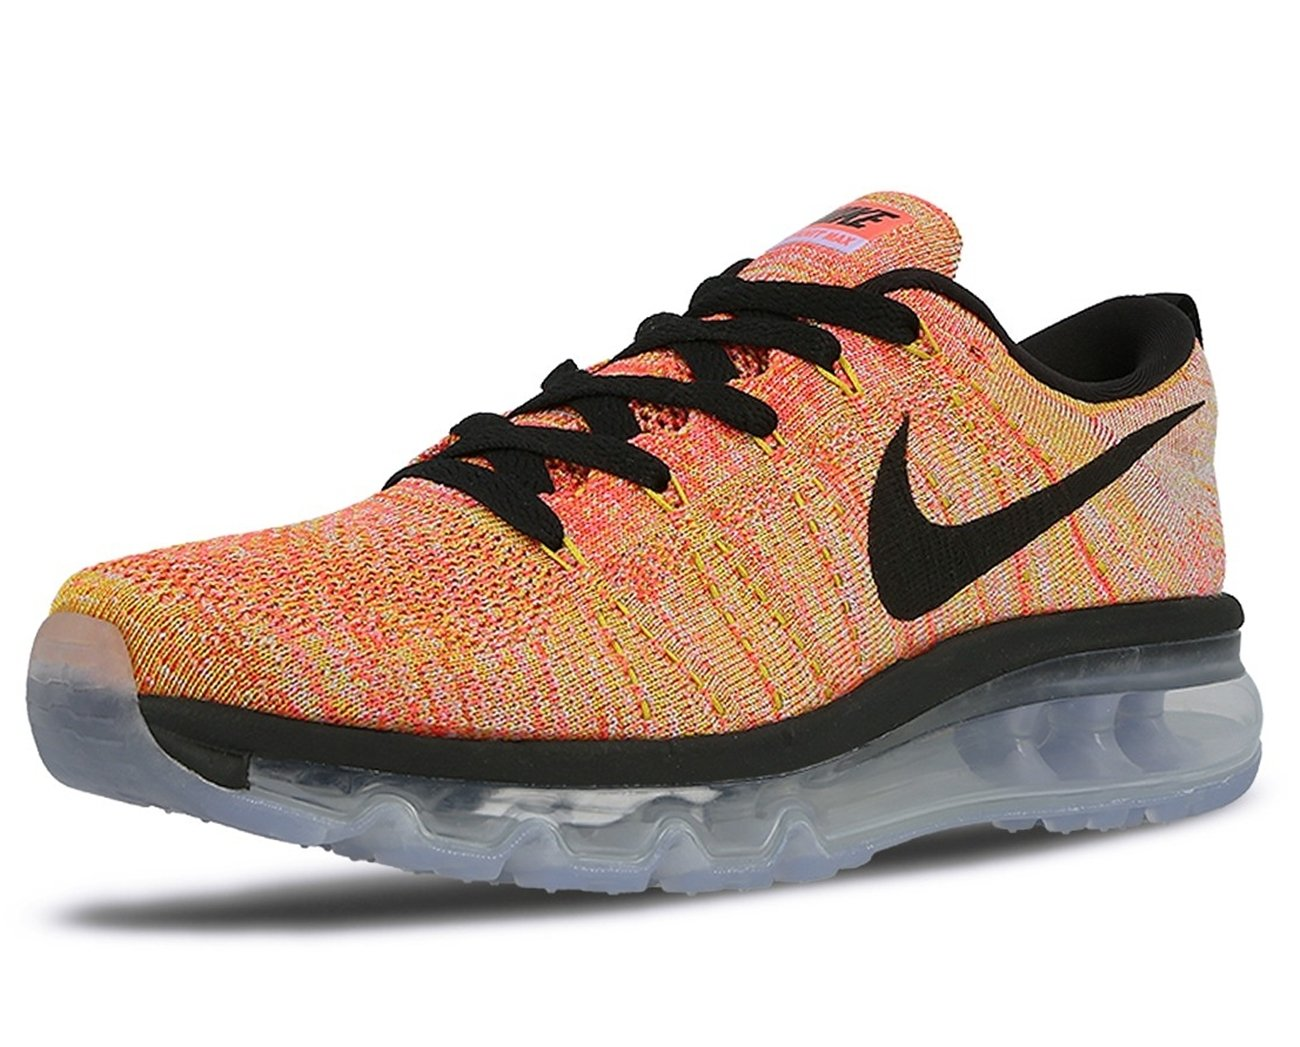 huge discount 71b97 94f09 Galleon - Nike Flyknit Air Max Womens Running Trainers 620659 Sneakers  Shoes (US 9.5, Aluminium Black Hot Punch 406)